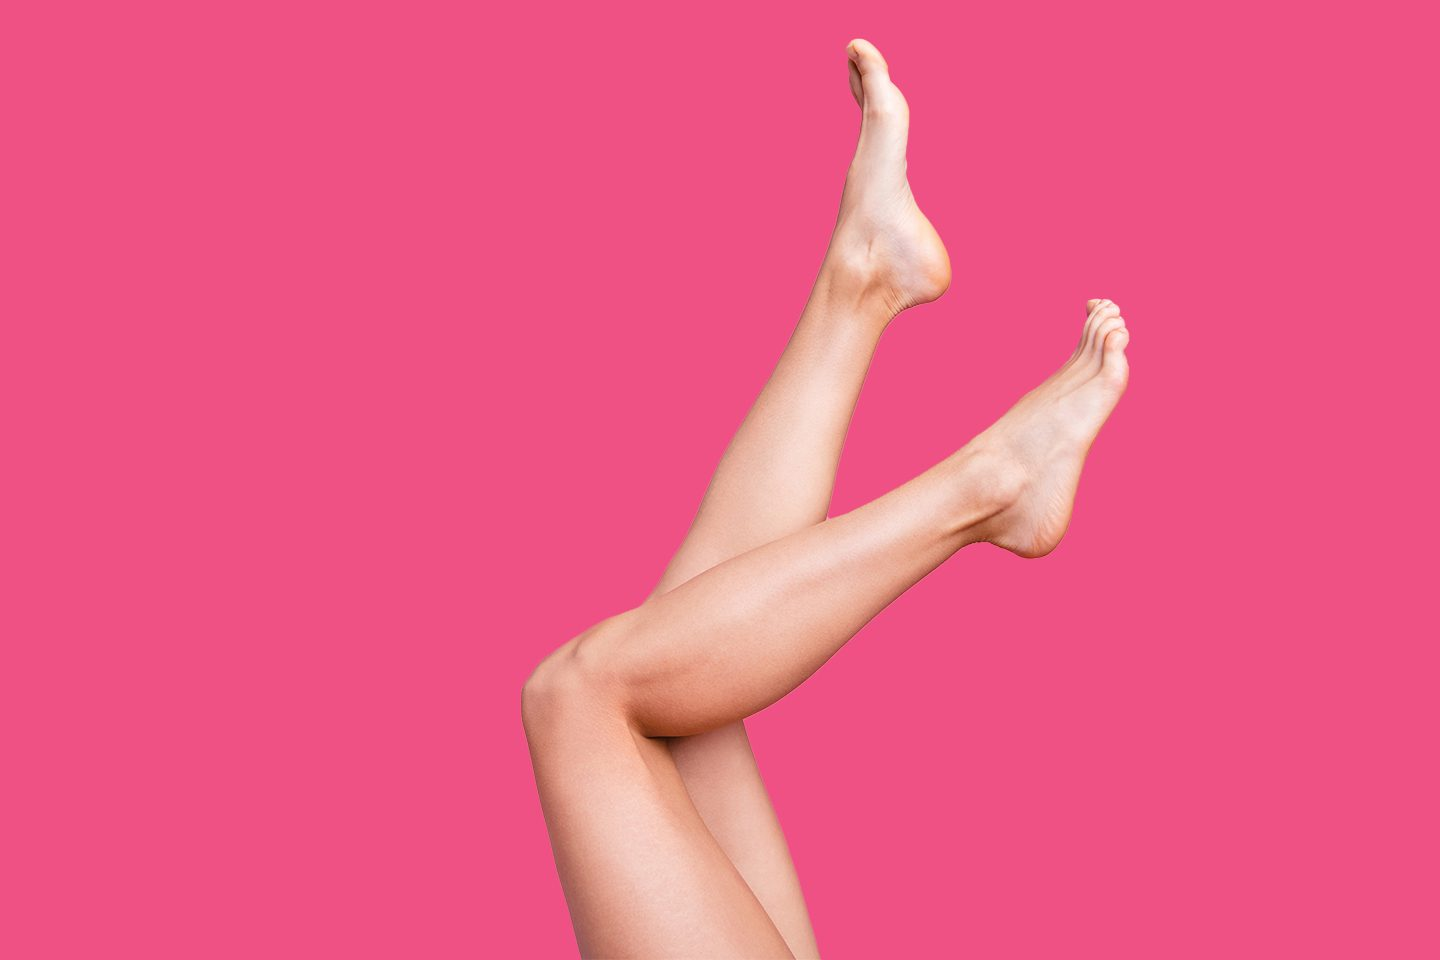 Woman's legs kicking up into the air on a hot pink background